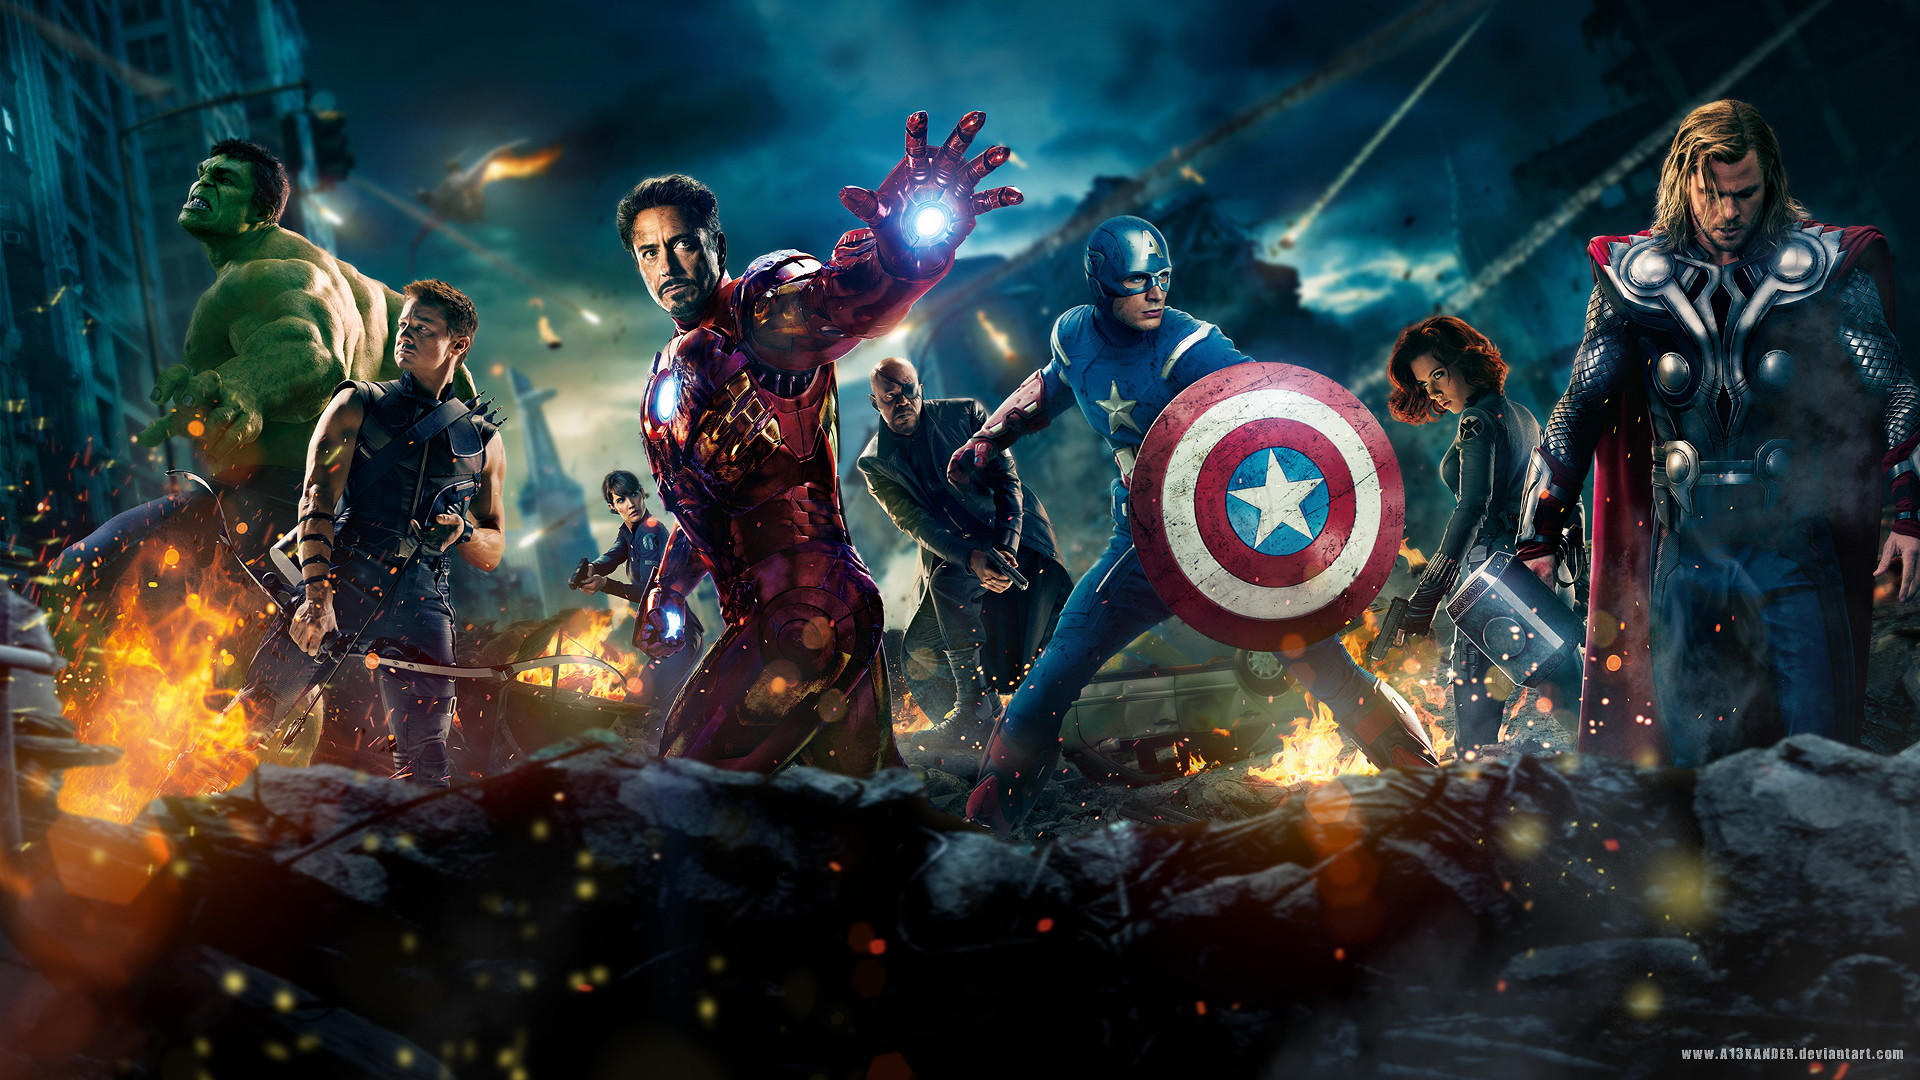 1920x1080 The Avengers Movie 2012